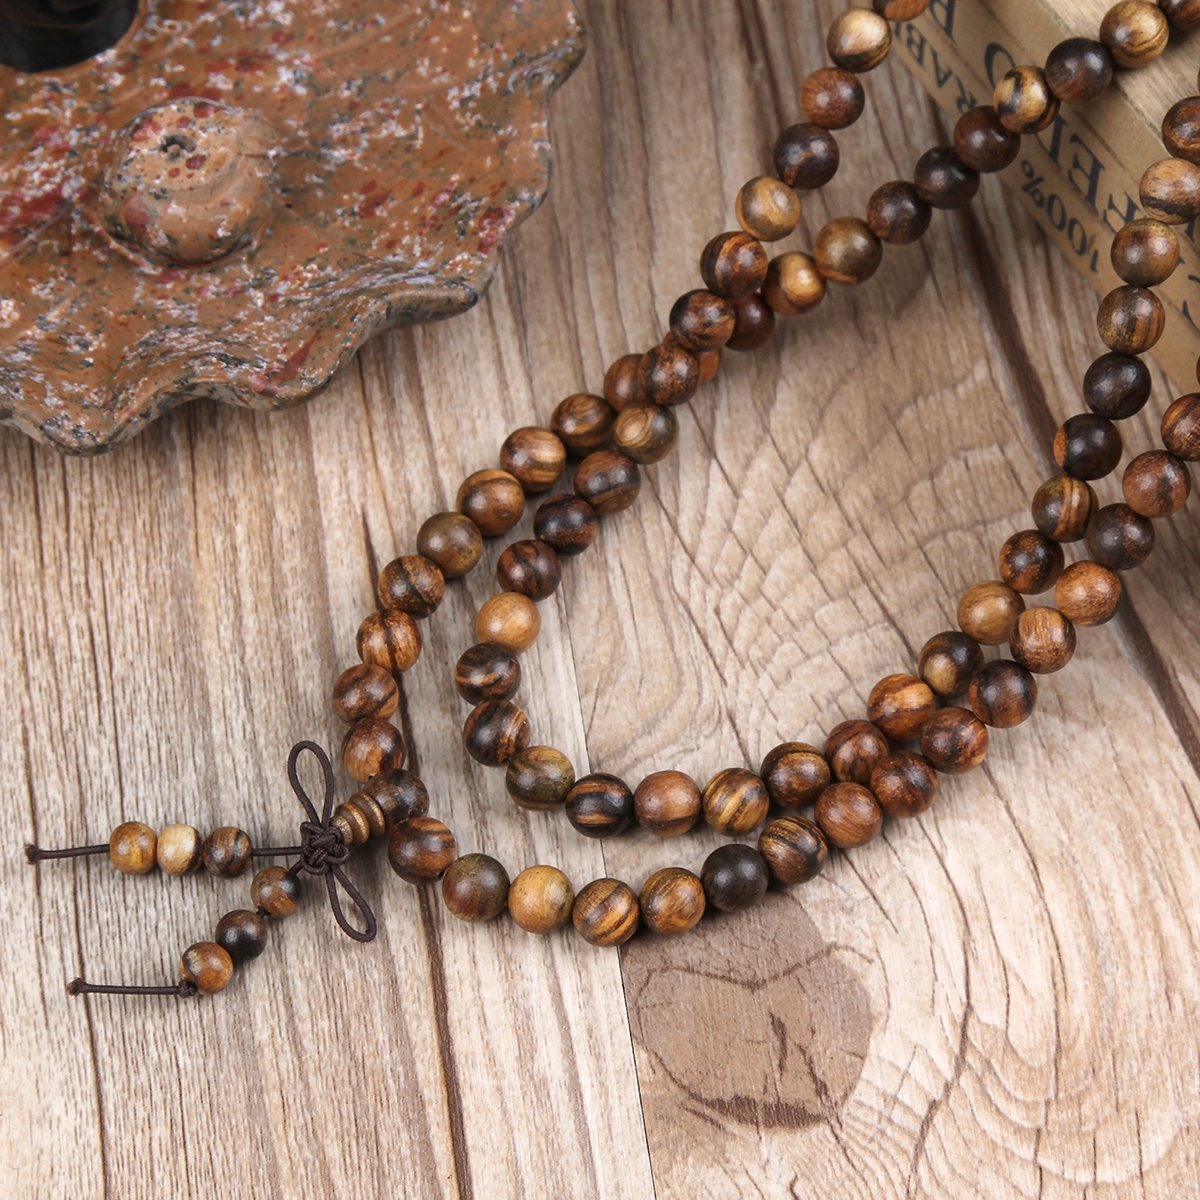 EVBEA 2PCS 6mm 8mm Buddha Bracelet Necklace Prayer Beads Rosary Wood Bracelets for Men (8mm bead) by EVBEA (Image #3)